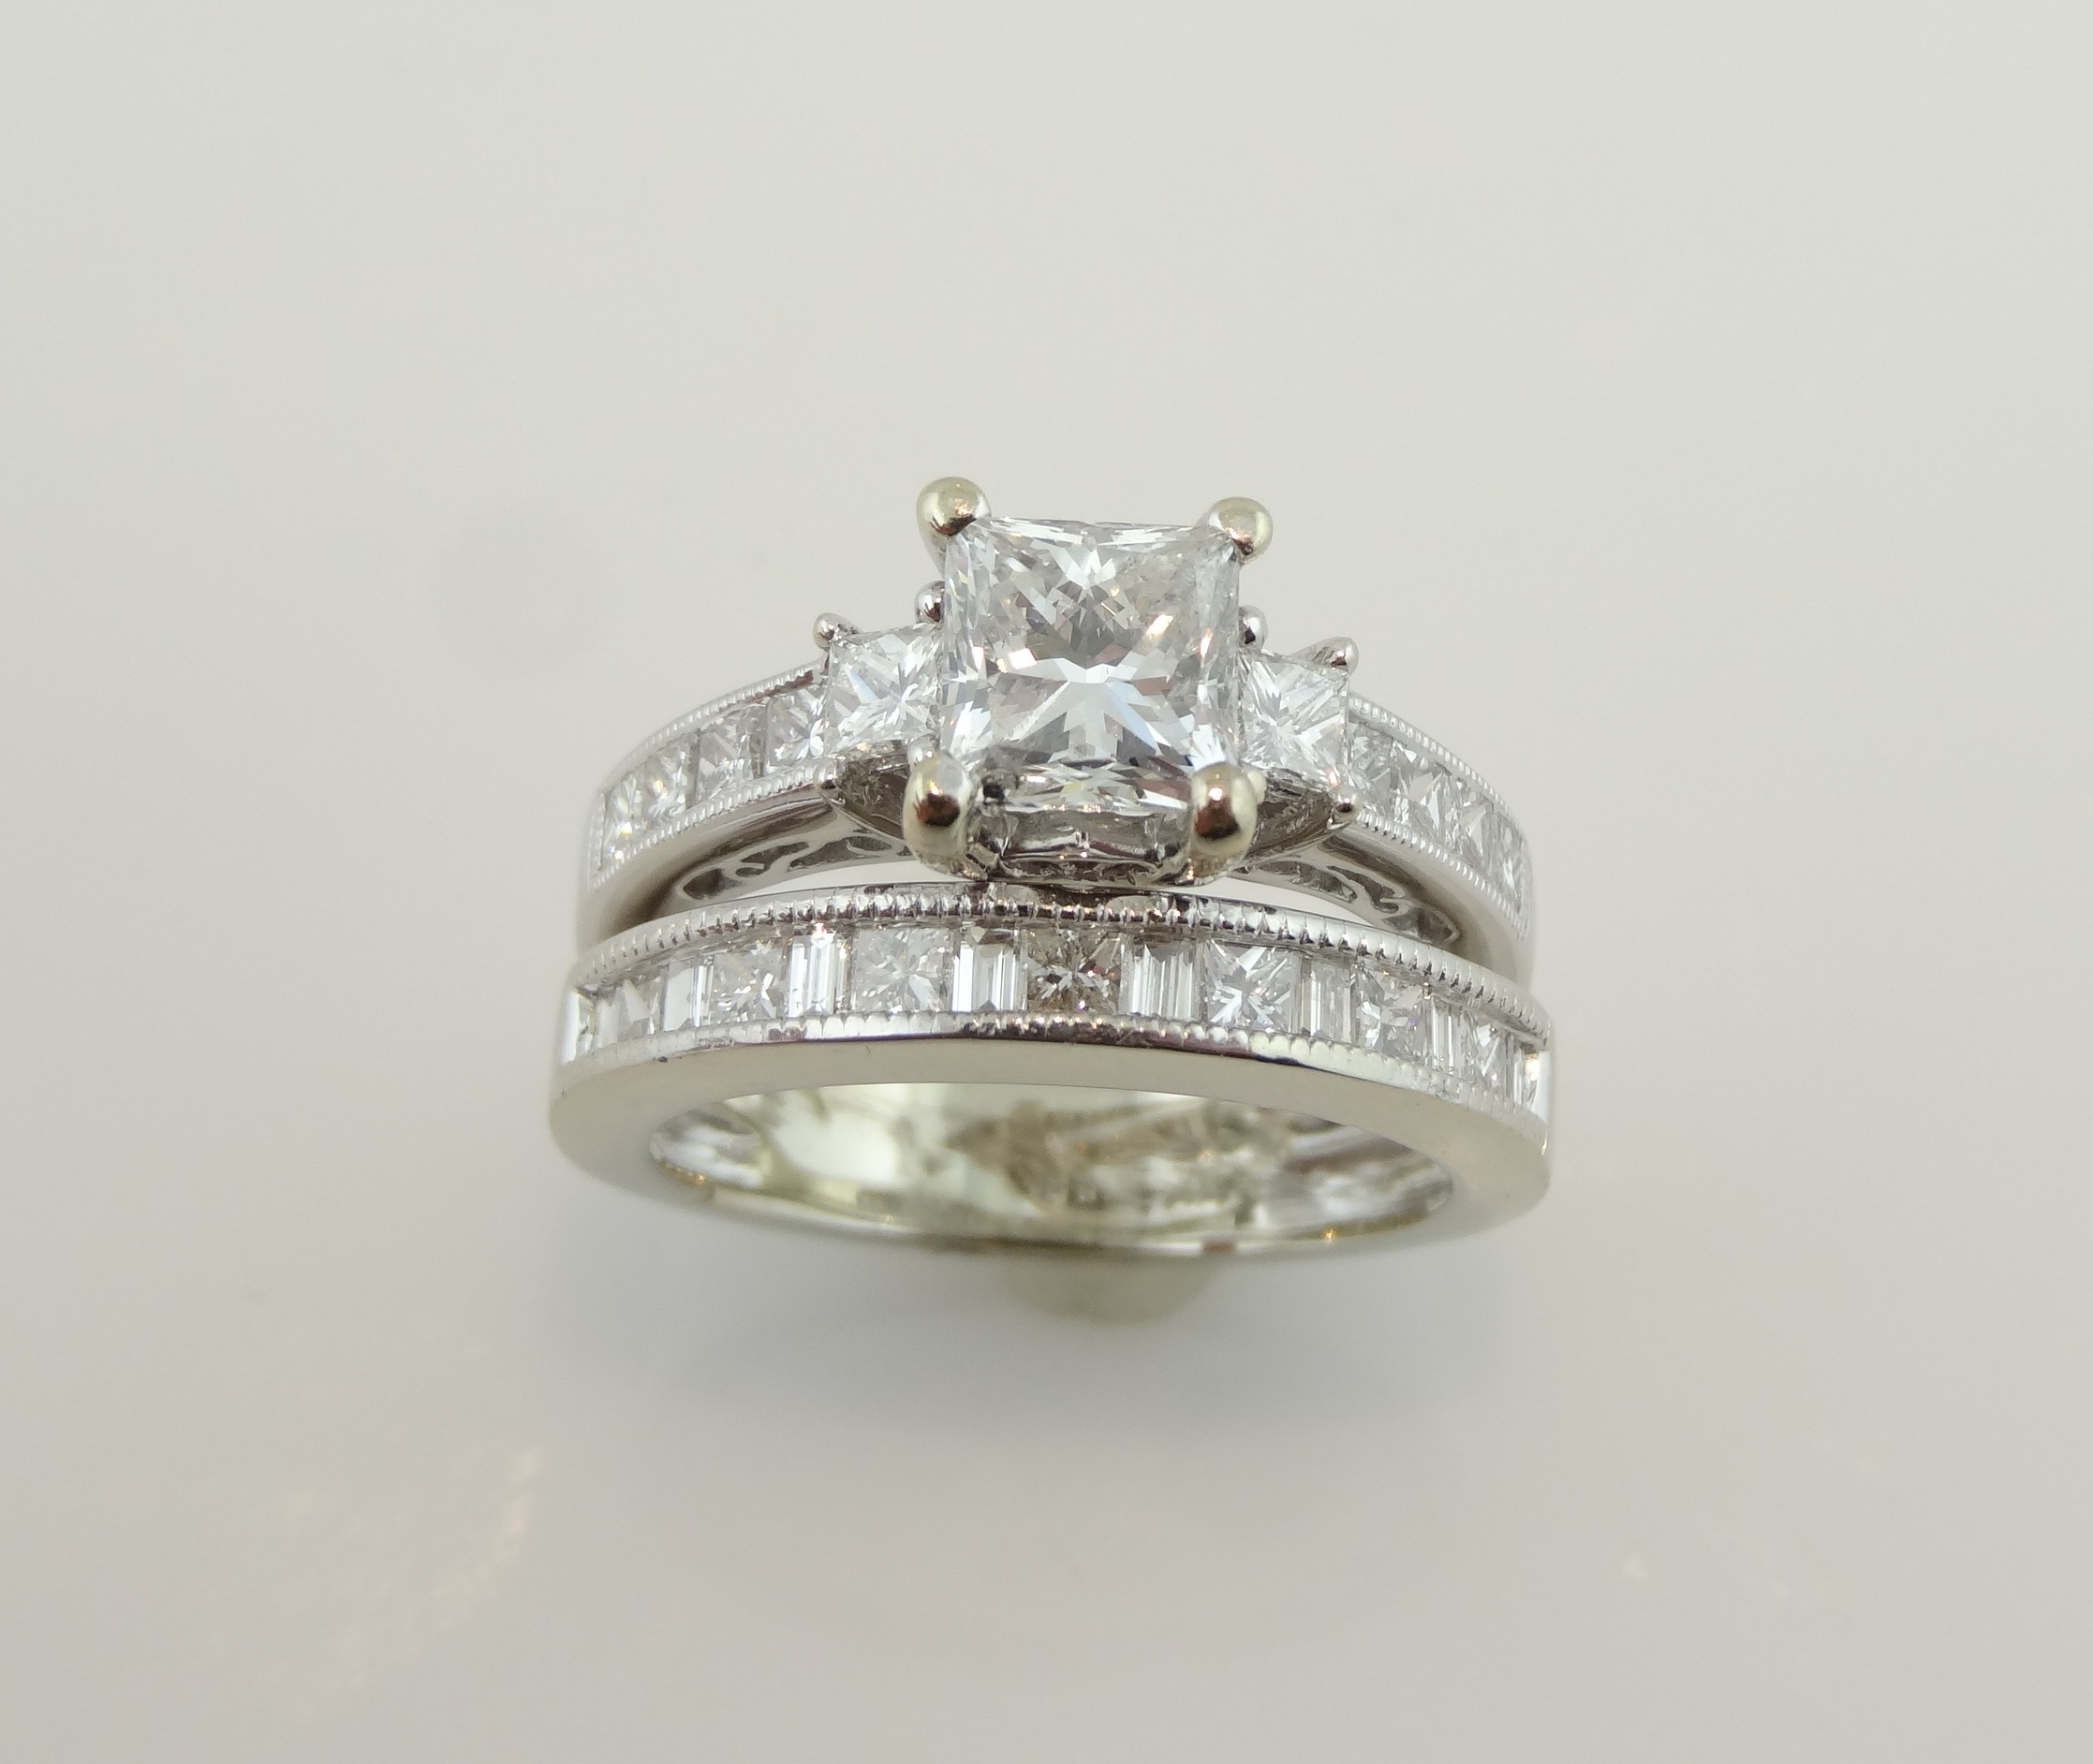 buying of lovely purchased recently jewellery wedding rings awesome sets custom gallery bridal what are see new others